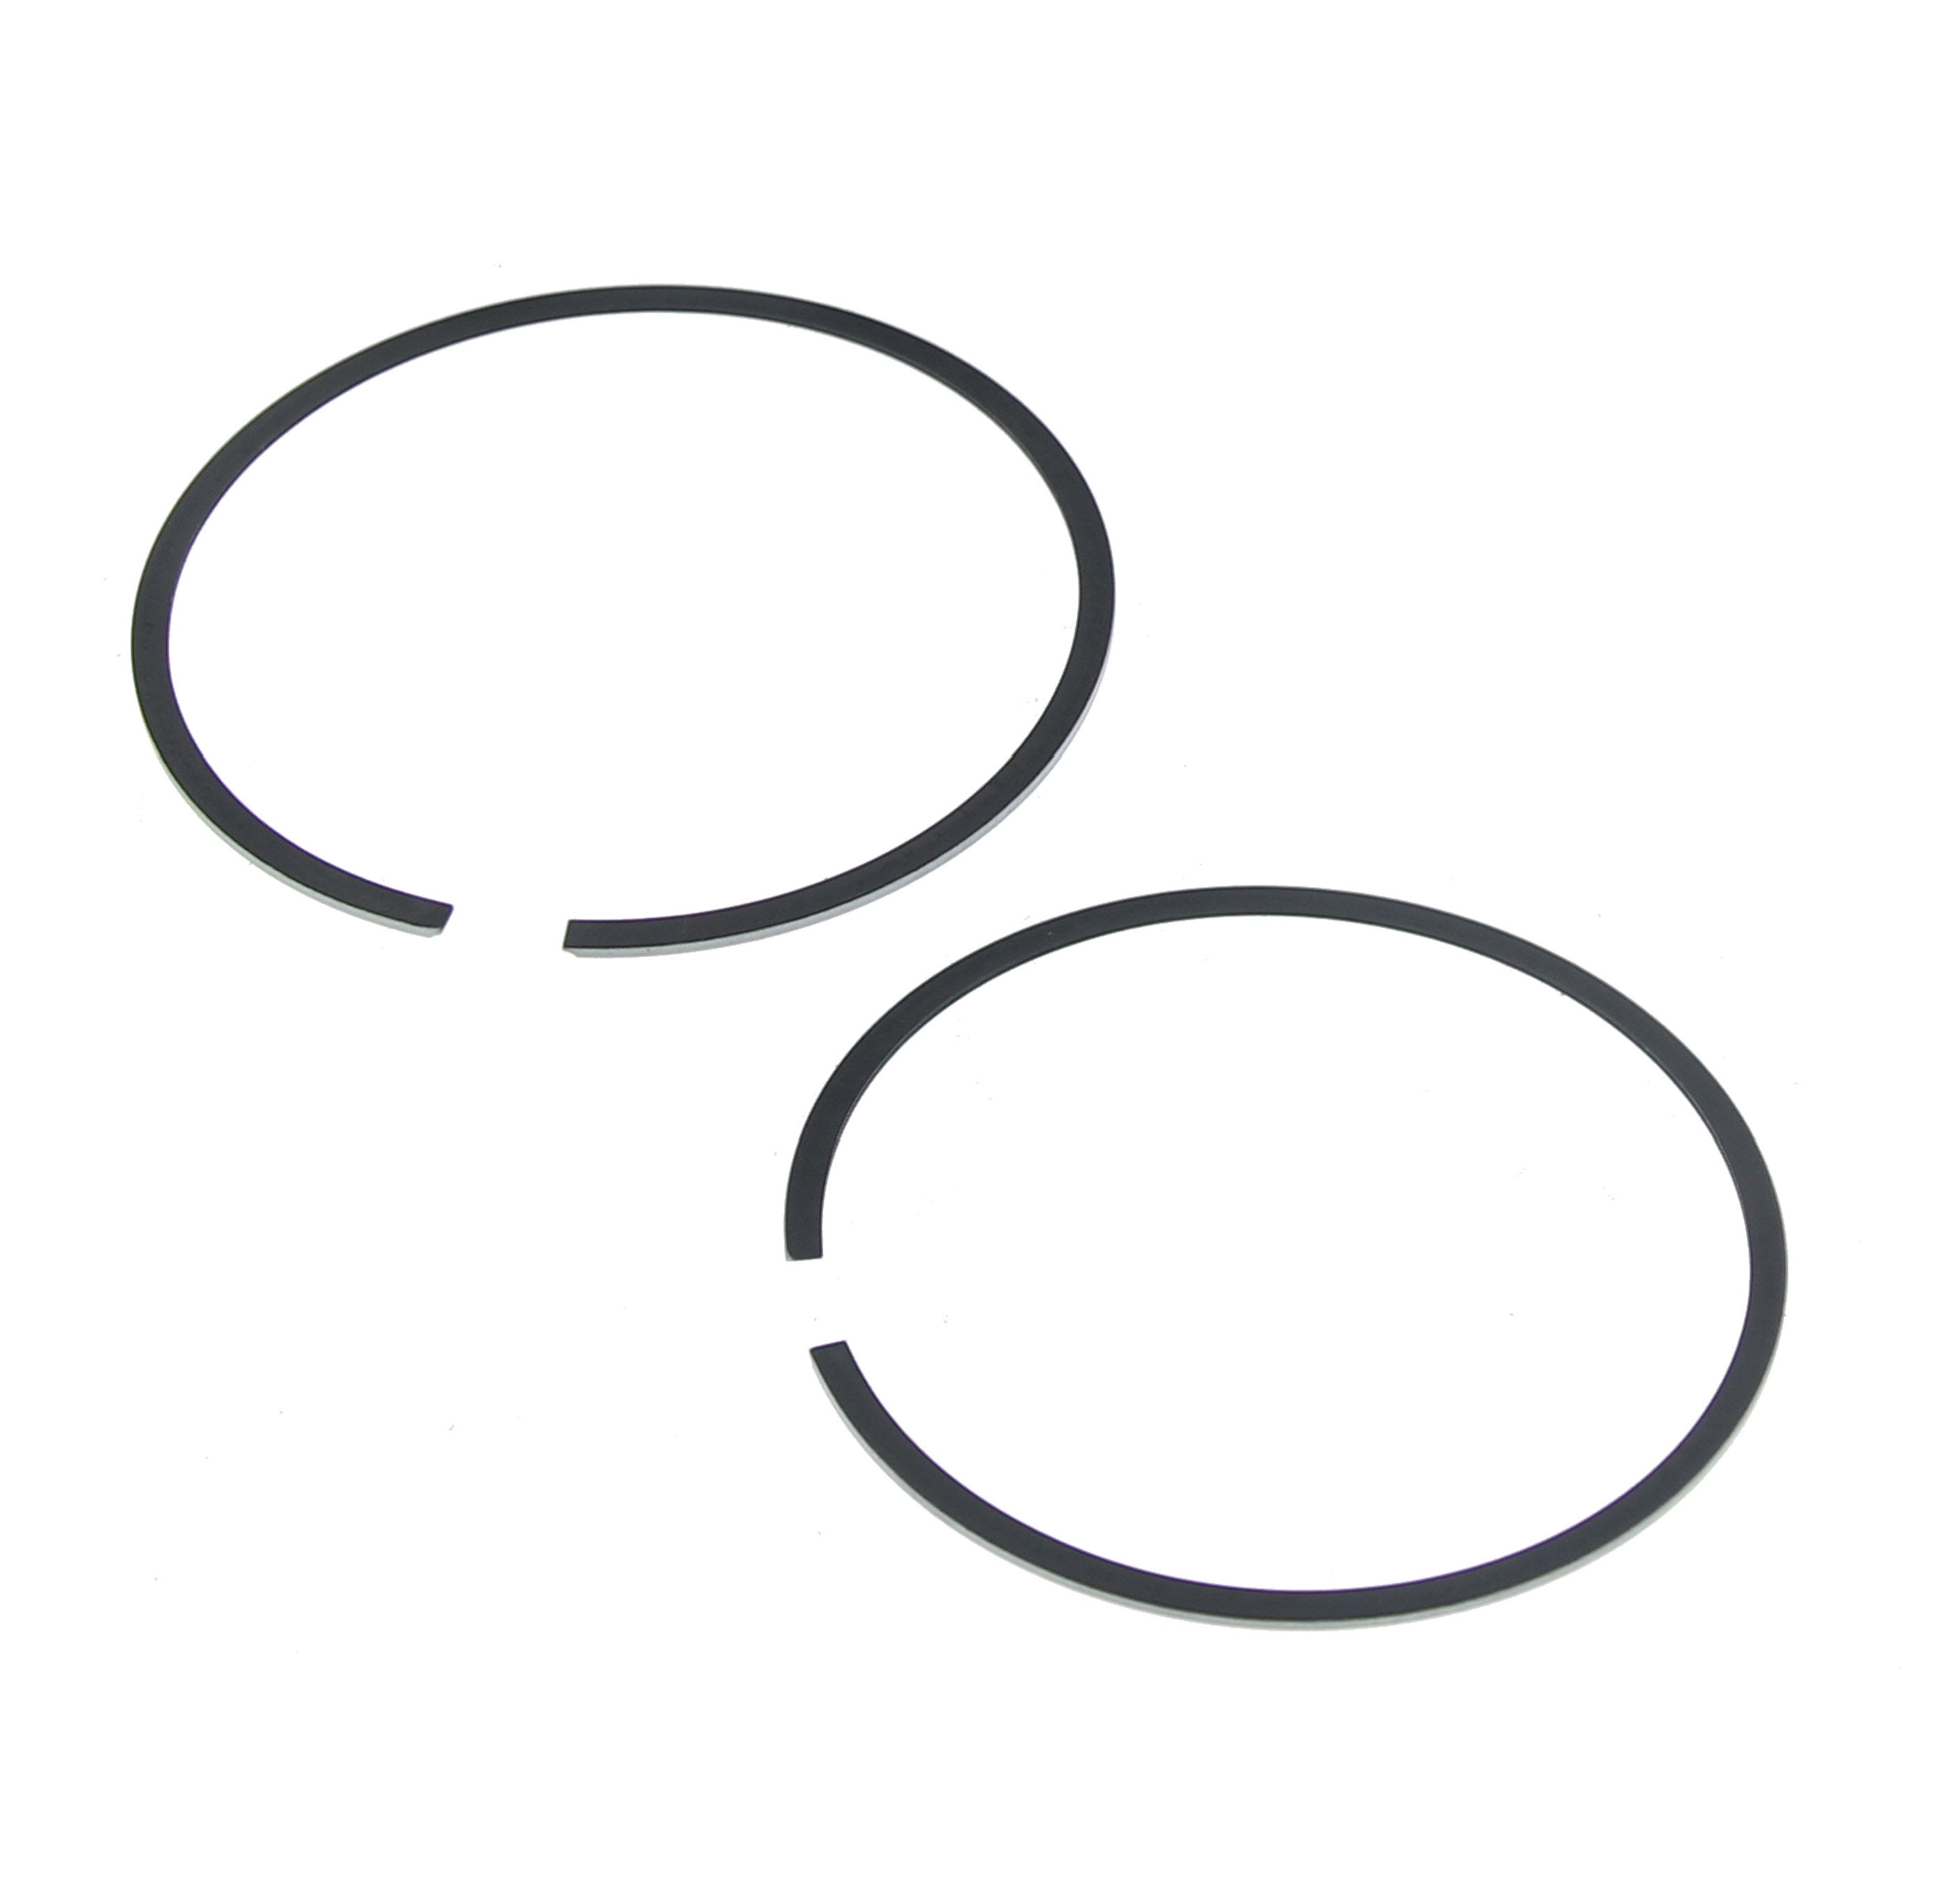 1987-1990 fits Yamaha Exciter 570 EX570 Piston Rings by